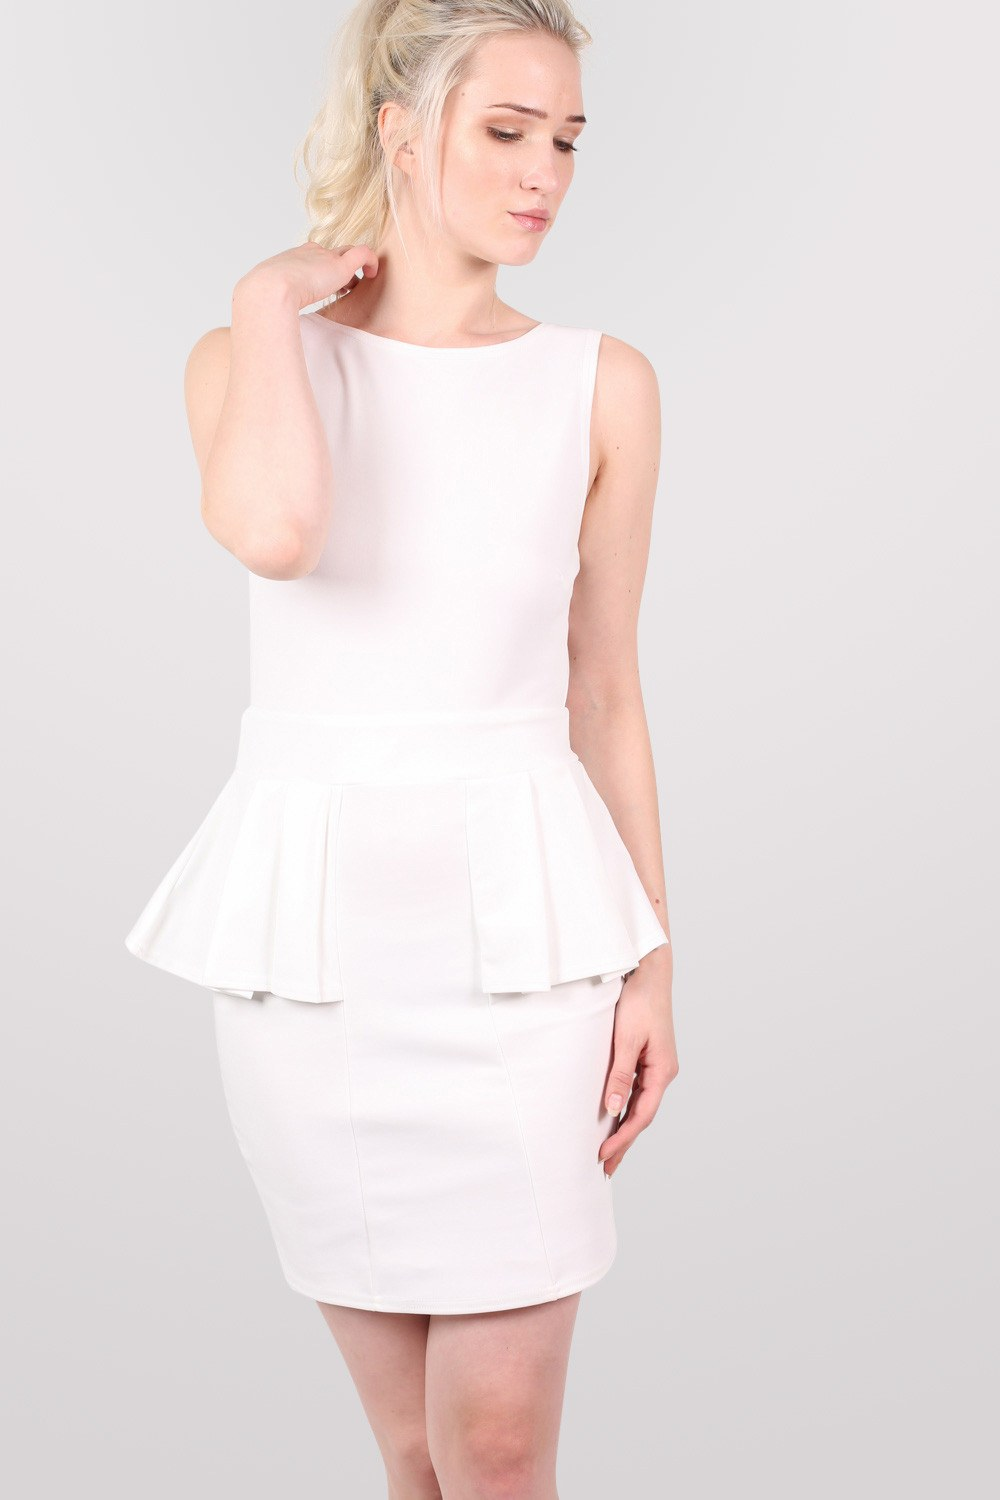 Low Back Peplum Dress in White MODEL FRONT